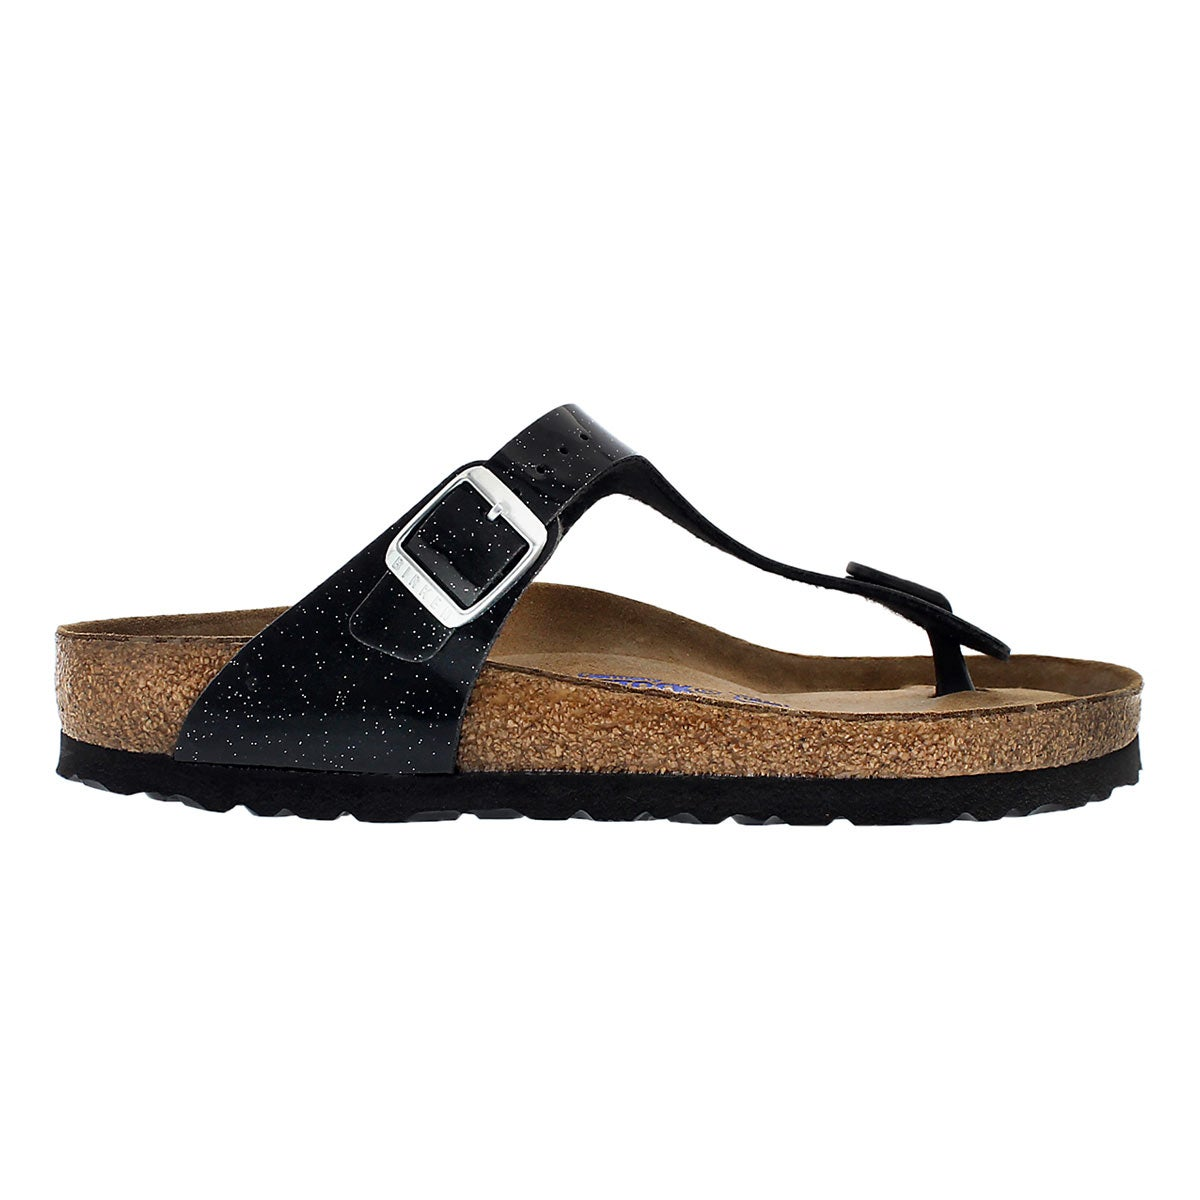 Lds Gizeh SF magic galaxy blk sandal